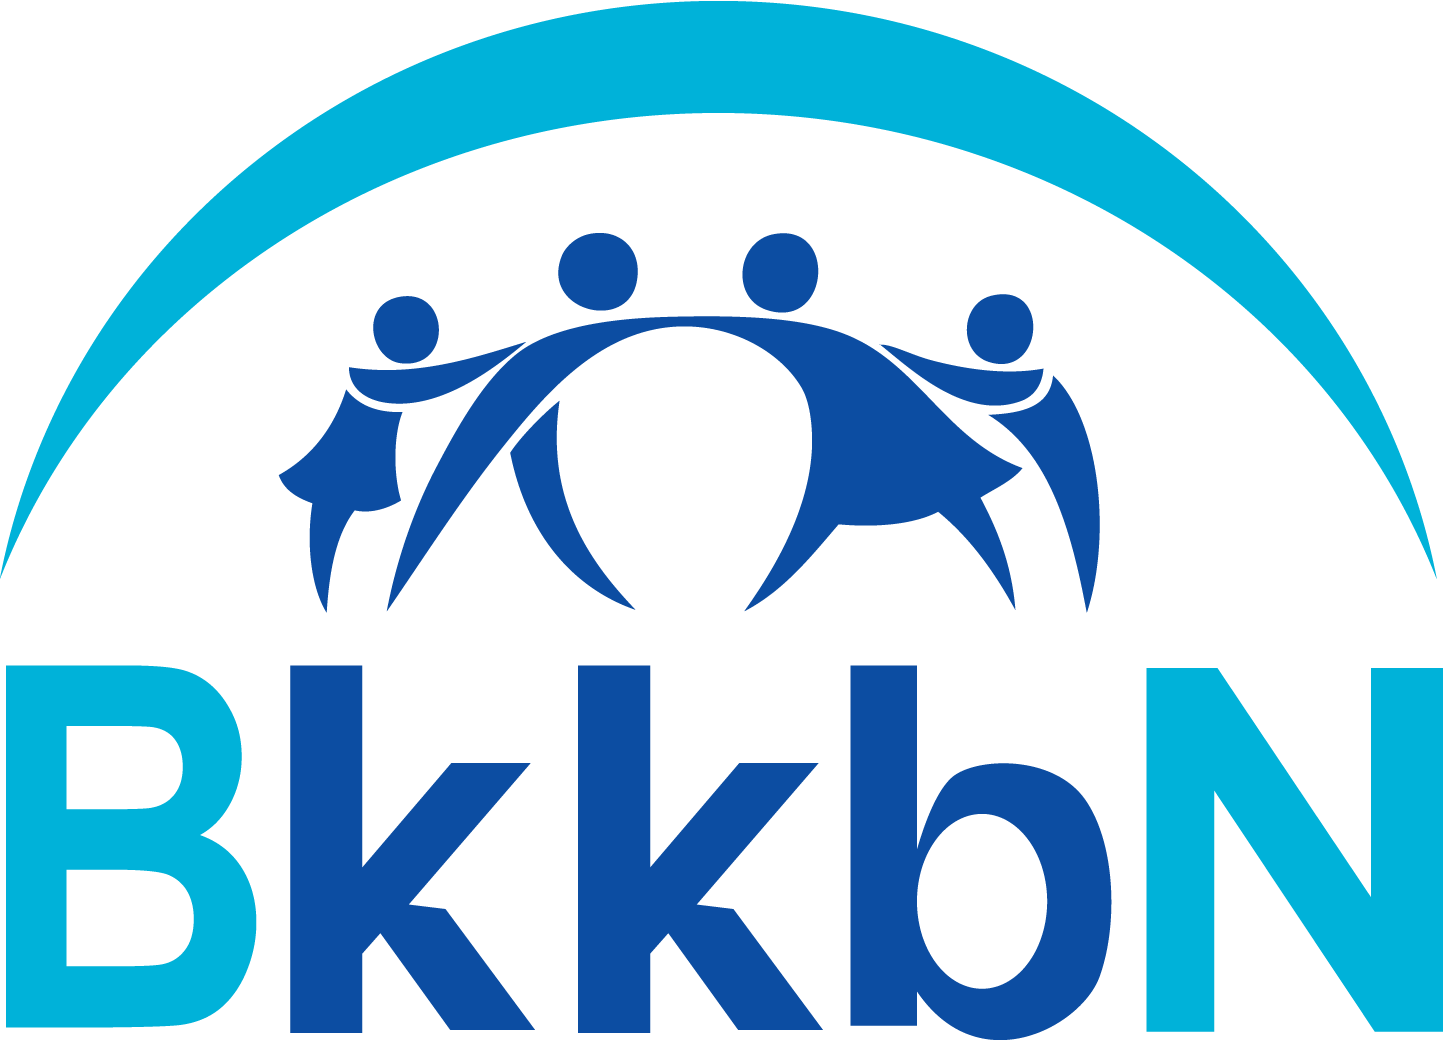 BKKBN Logo Wallpaper